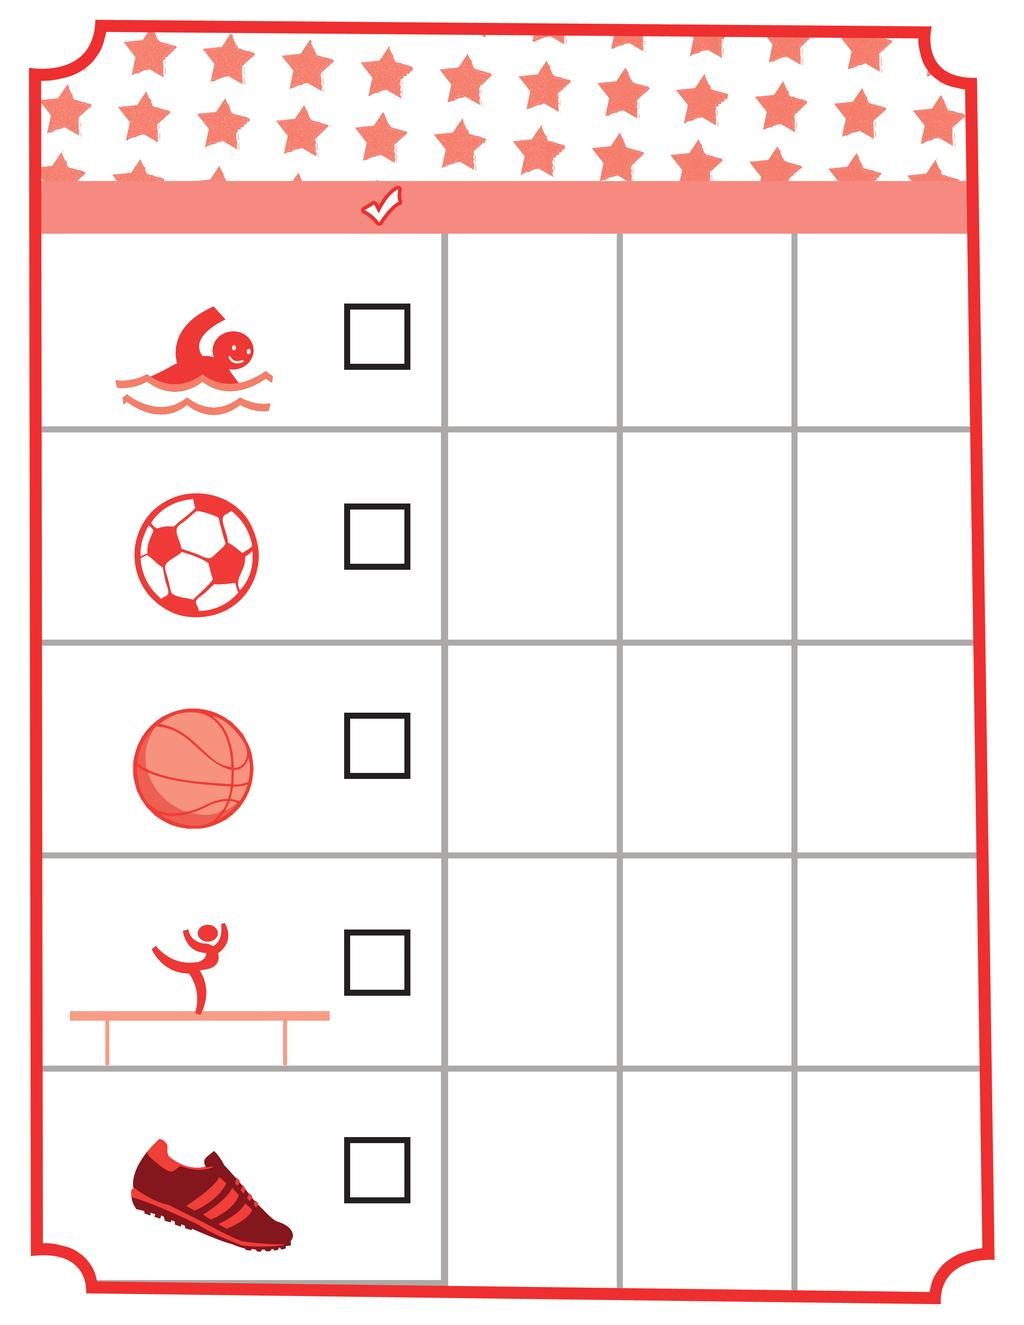 FAMILY OLYMPICS CHECKLIST Here's a checklist of fun outdoor activities your whole family can do this summer see how many you can do before the Olympics are over.